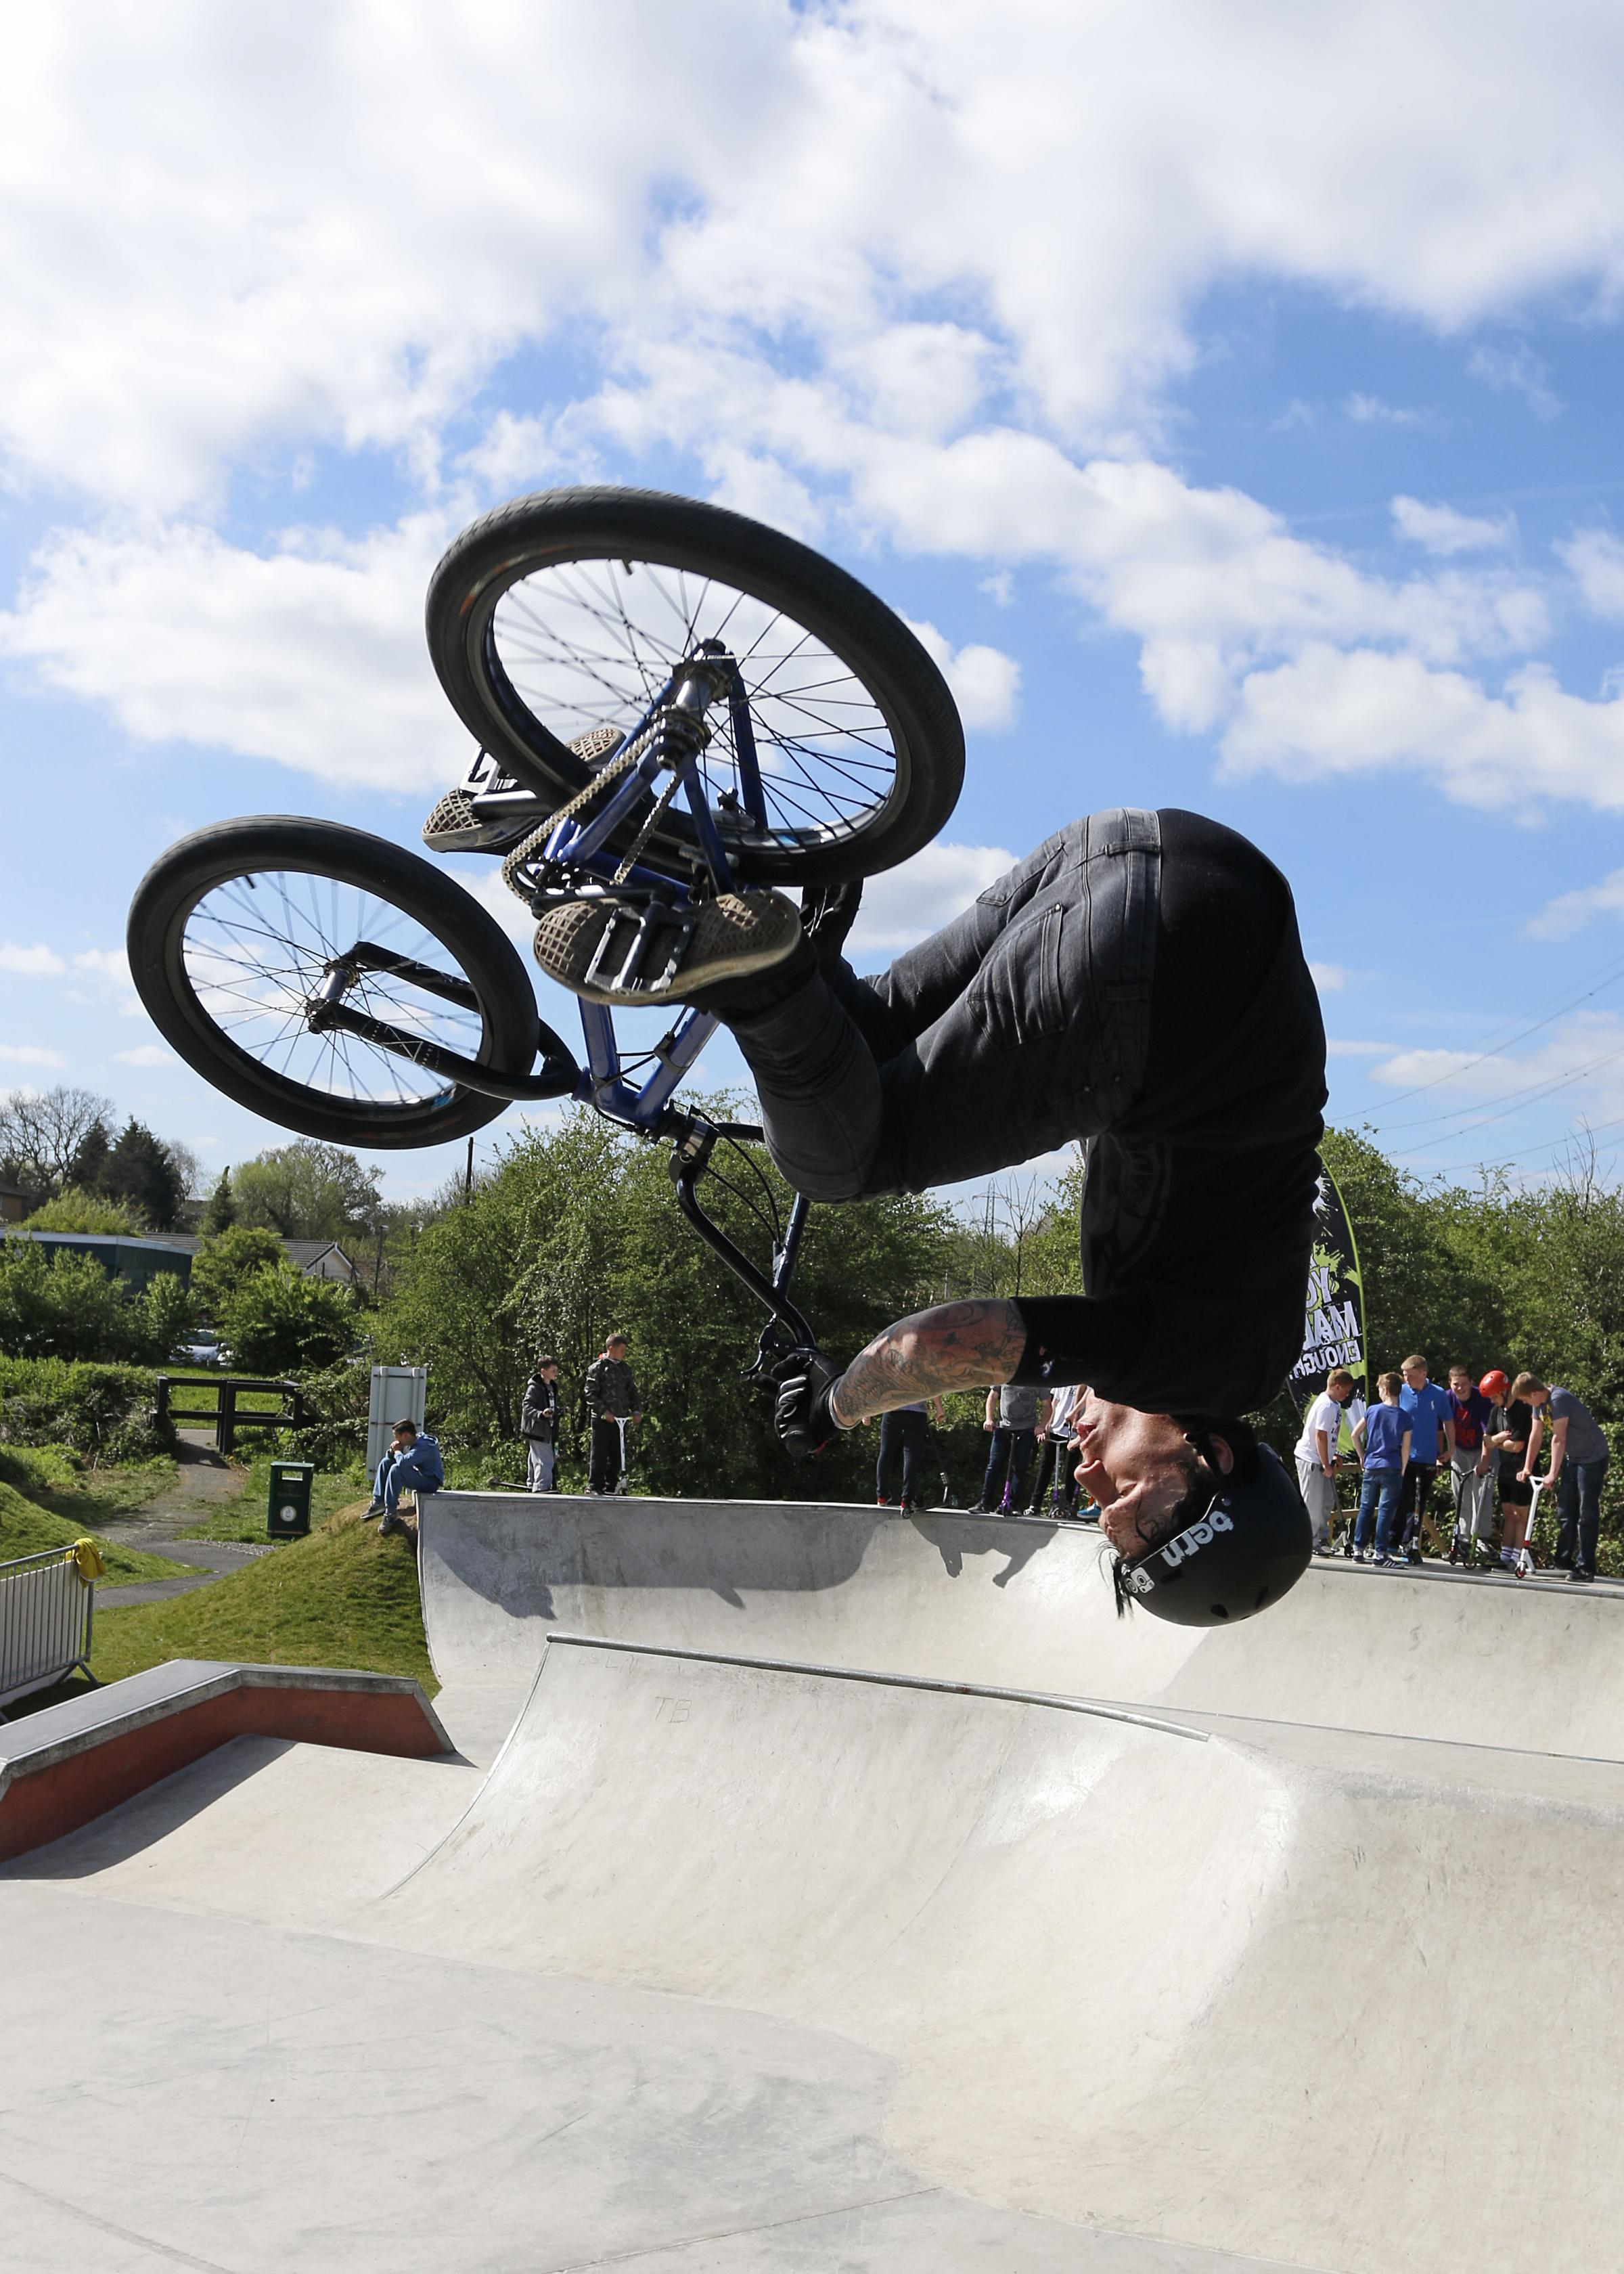 Pro BMX rider Mat Armstrong in action at the skate park in Cox Lane, West Ewell